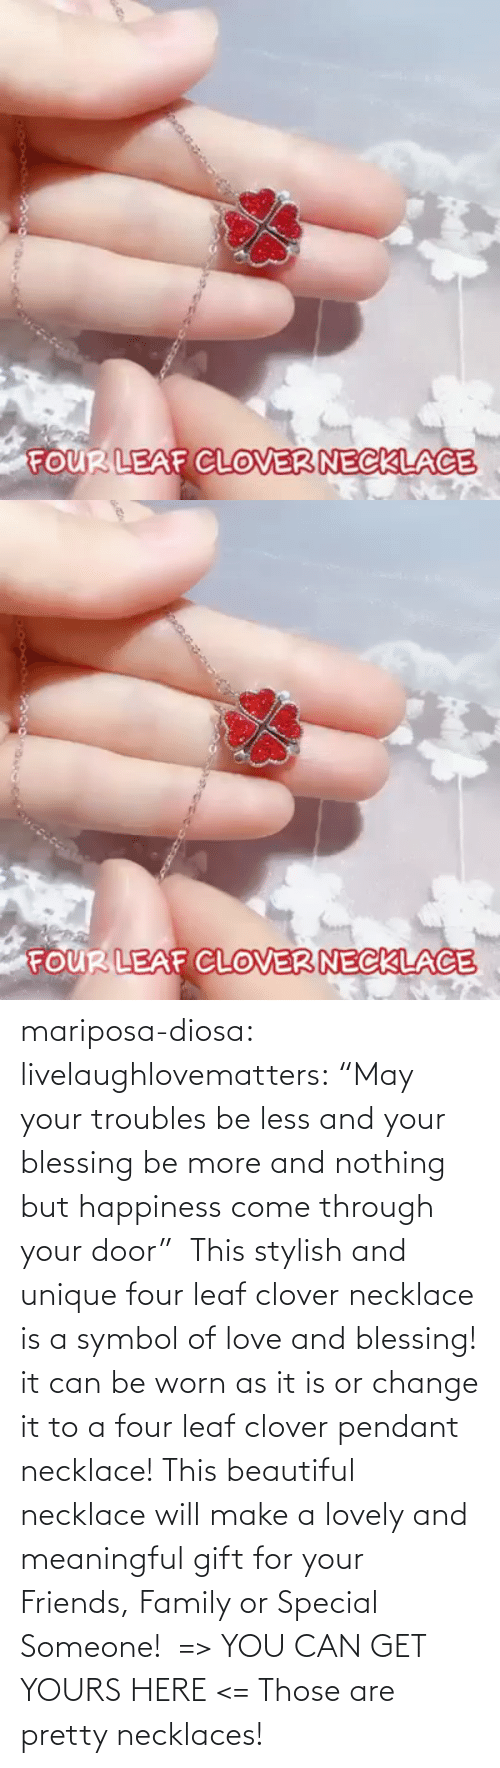 "As It Is: mariposa-diosa: livelaughlovematters:  ""May your troubles be less and your blessing be more and nothing but happiness come through your door""  This stylish and unique four leaf clover necklace is a symbol of love and blessing! it can be worn as it is or change it to a four leaf clover pendant necklace! This beautiful necklace will make a lovely and meaningful gift for your Friends, Family or Special Someone!  => YOU CAN GET YOURS HERE <=    Those are pretty necklaces!"